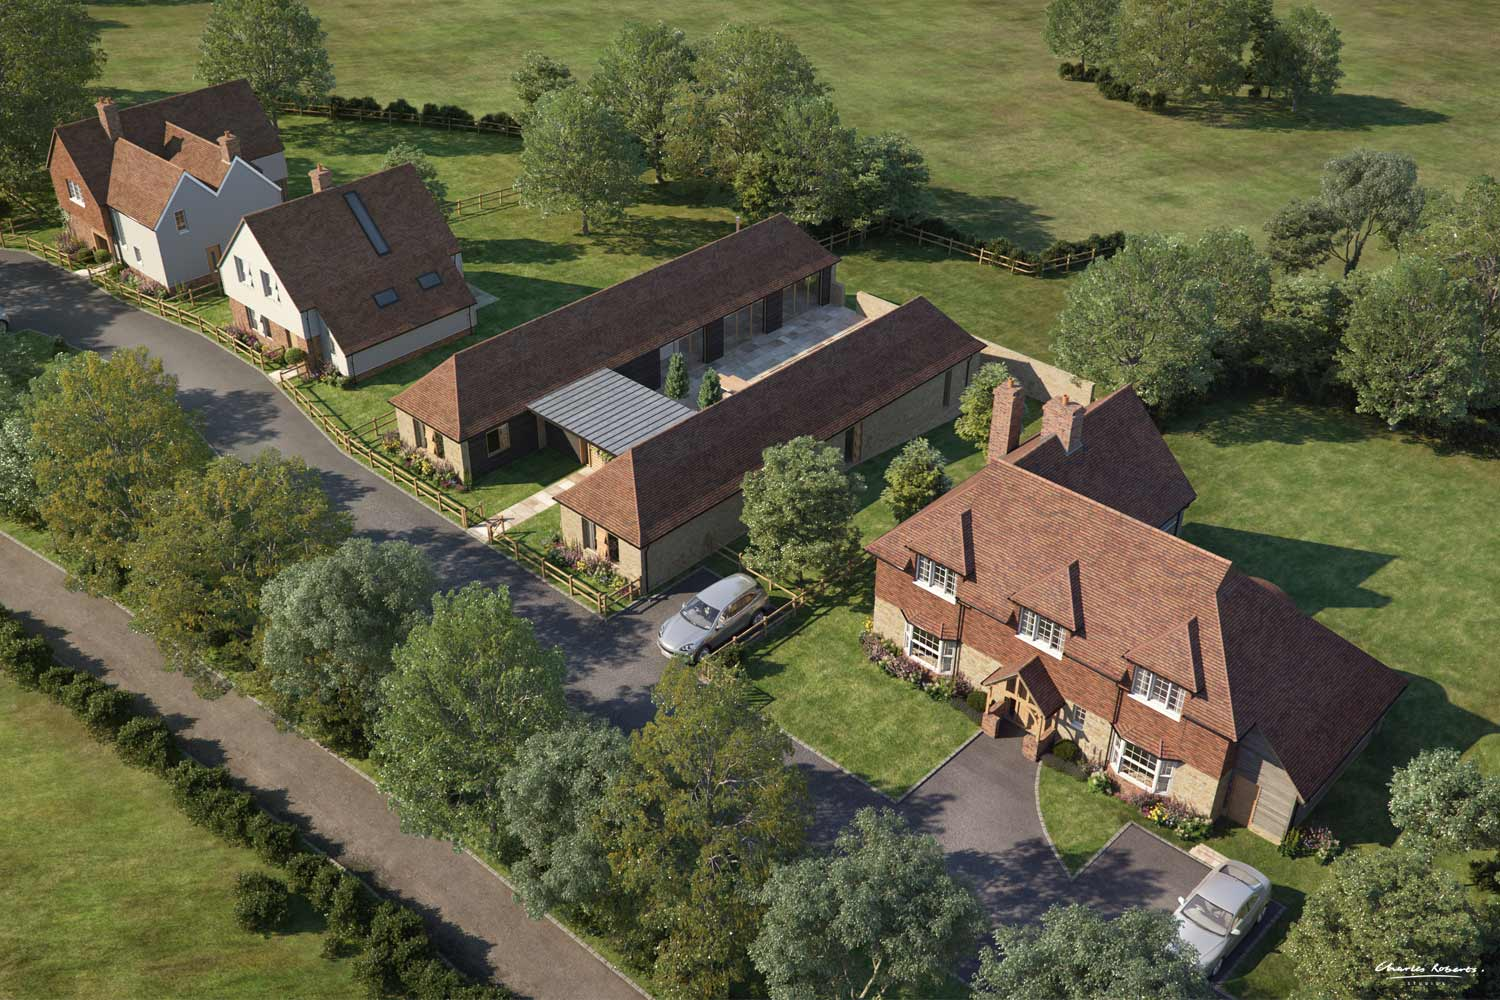 Aerial 3d visualisation of a new development